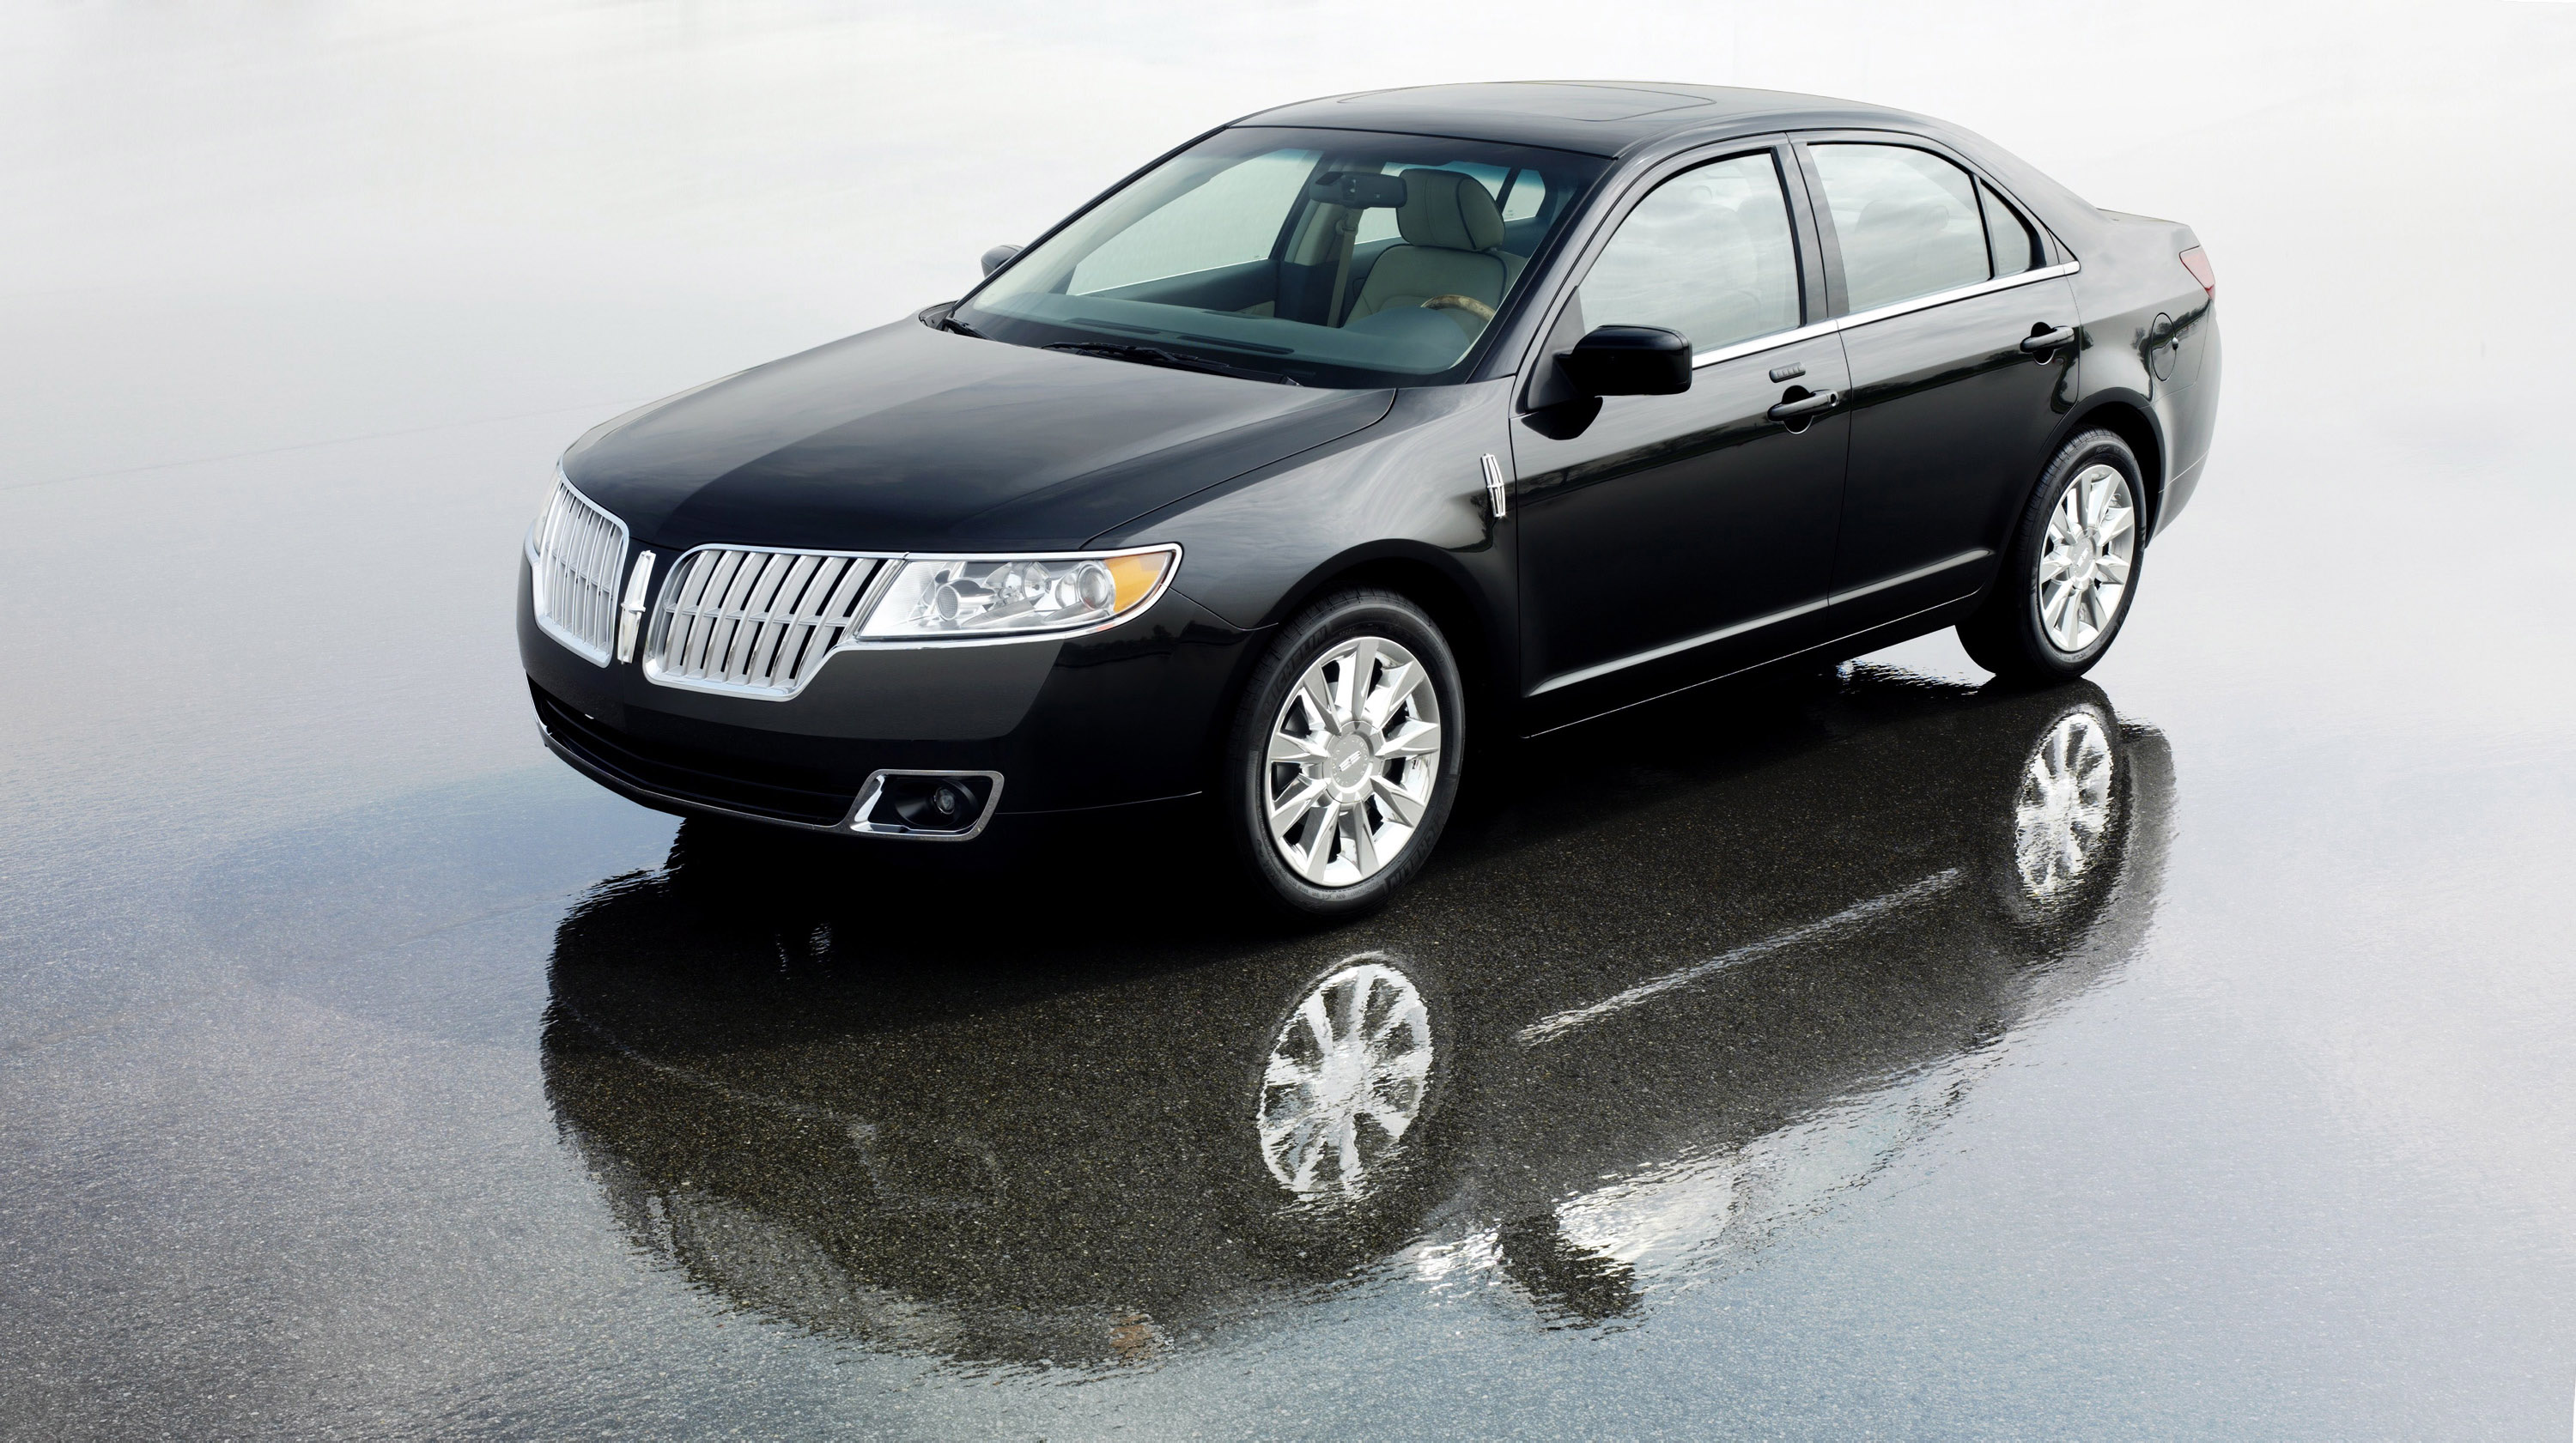 htm cars chrysler for pre fulton in featured used syracuse vehicles mkz sedan near owned lincoln sale